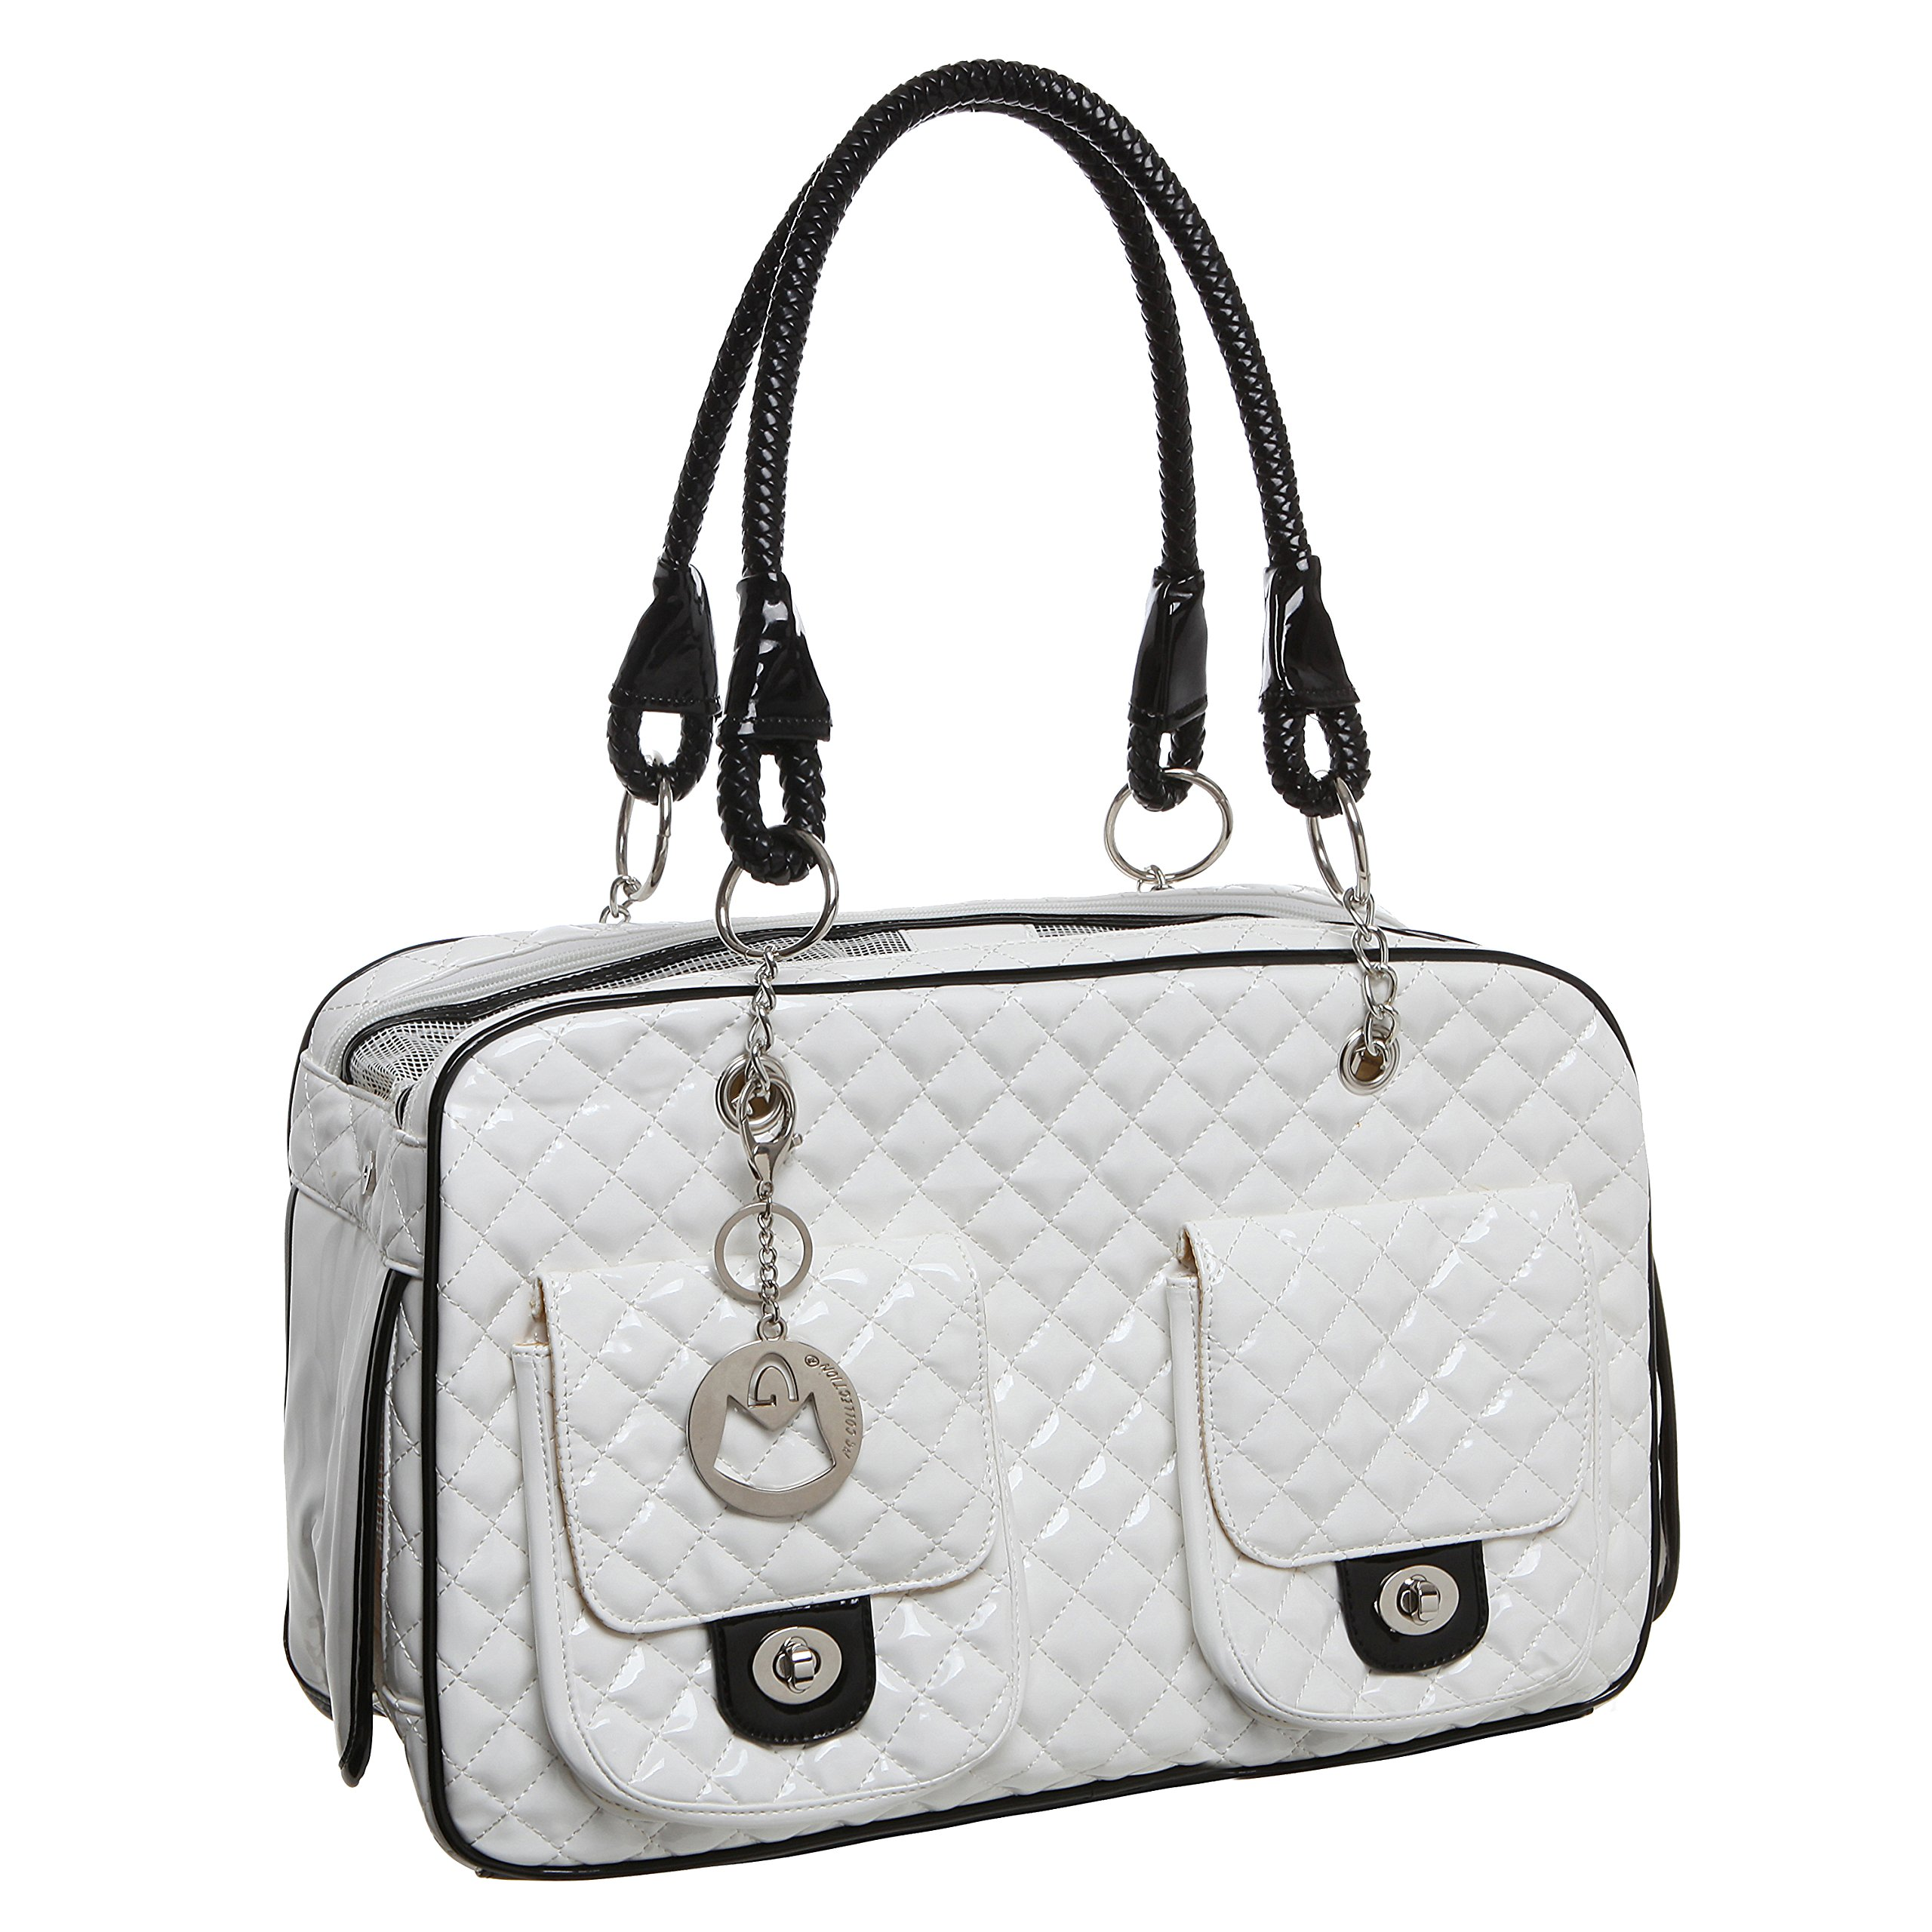 MG Collection White Quilted Designer Inspired Faux Patent Leather Dog & Cat Pet Carrier Tote Handbag